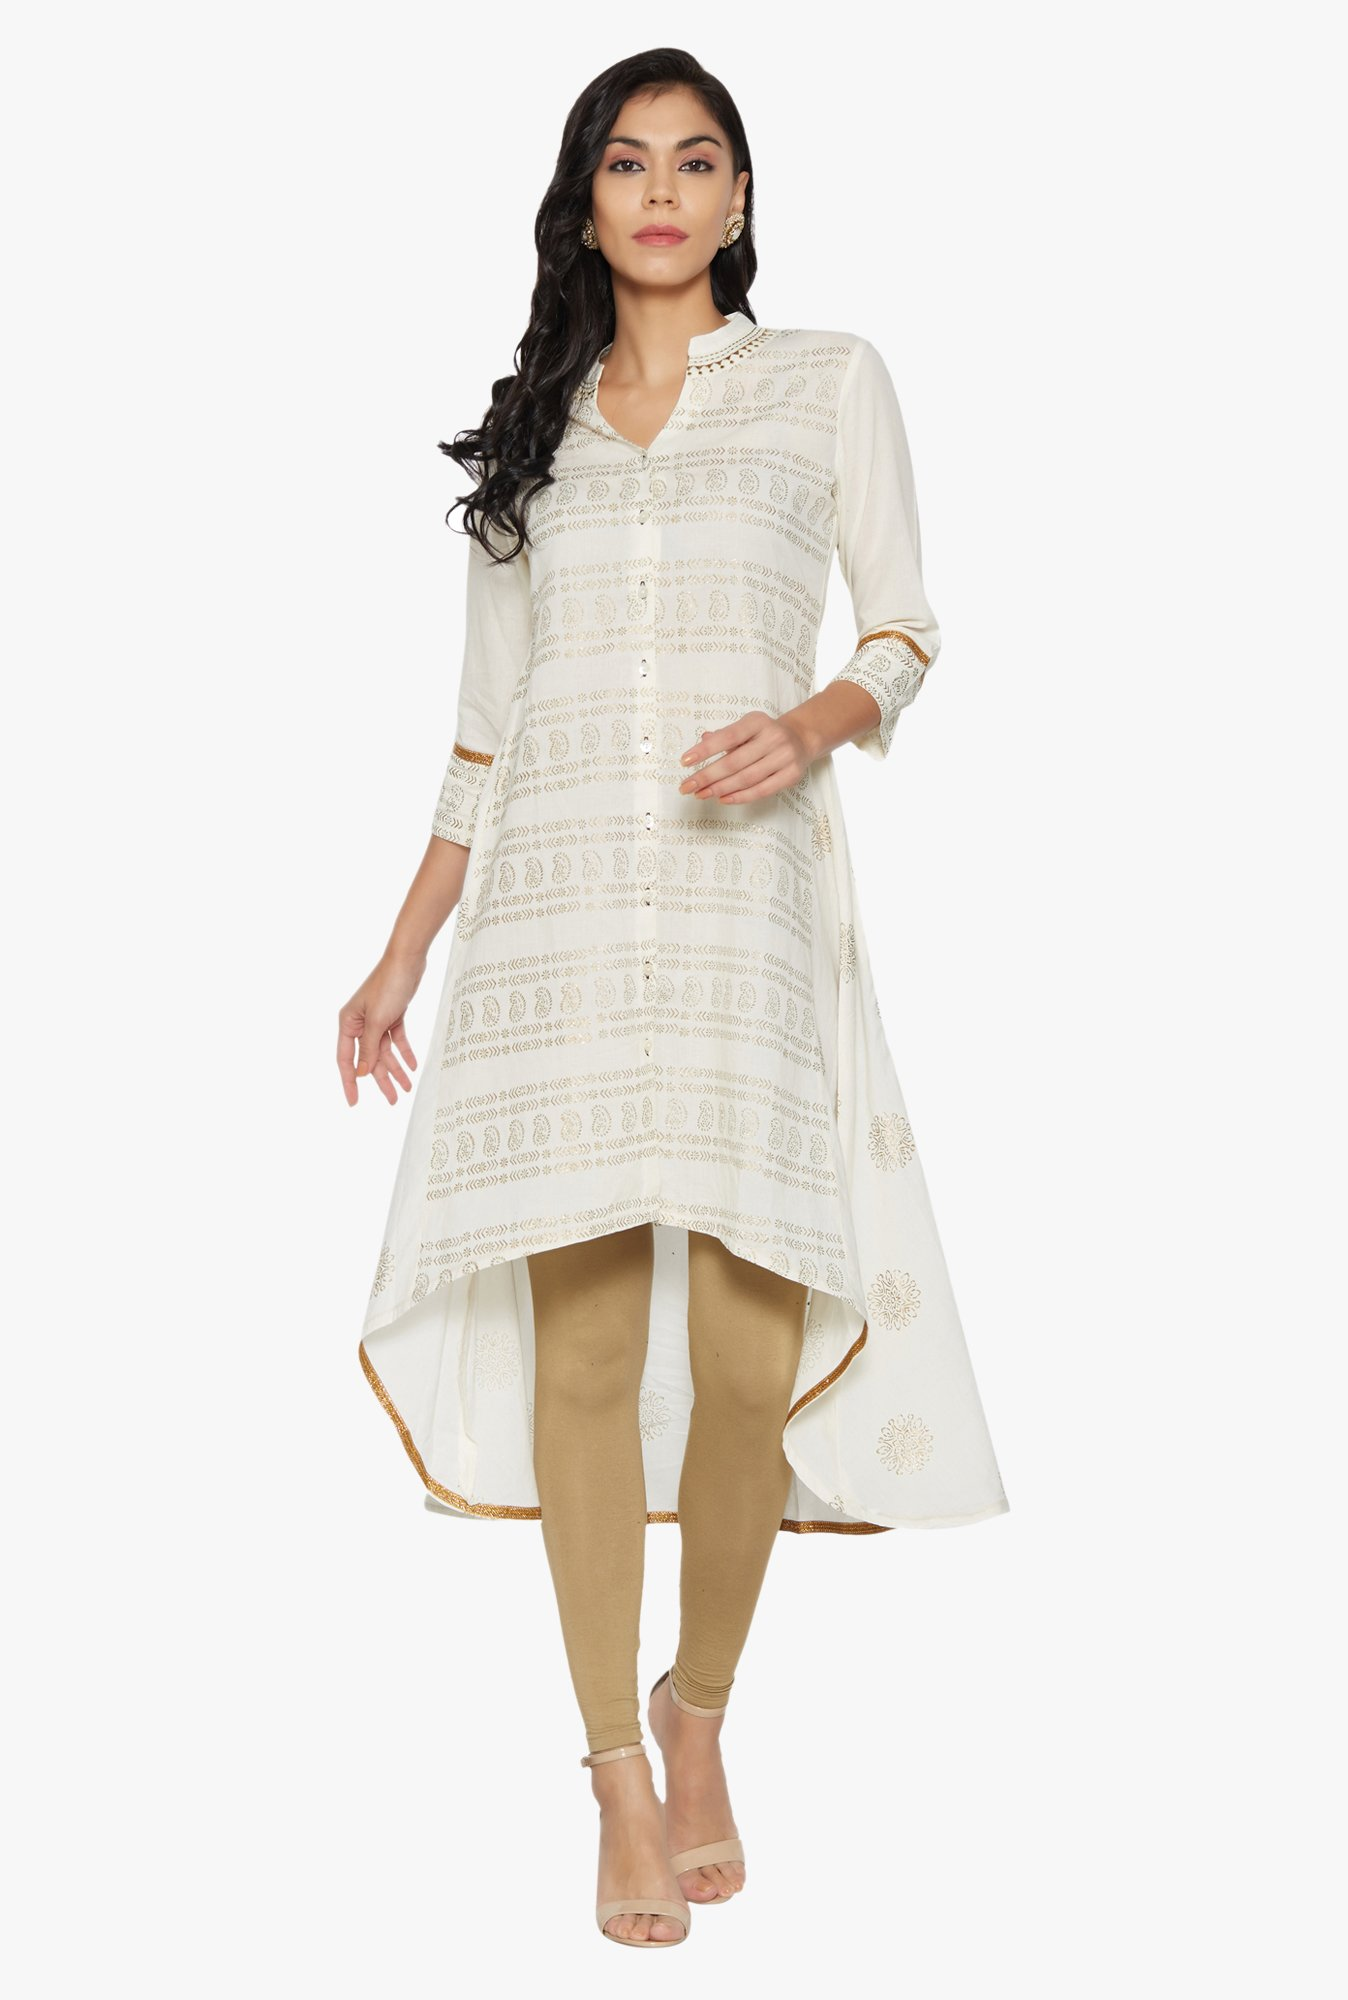 Globus Off White Printed Cotton Kurta